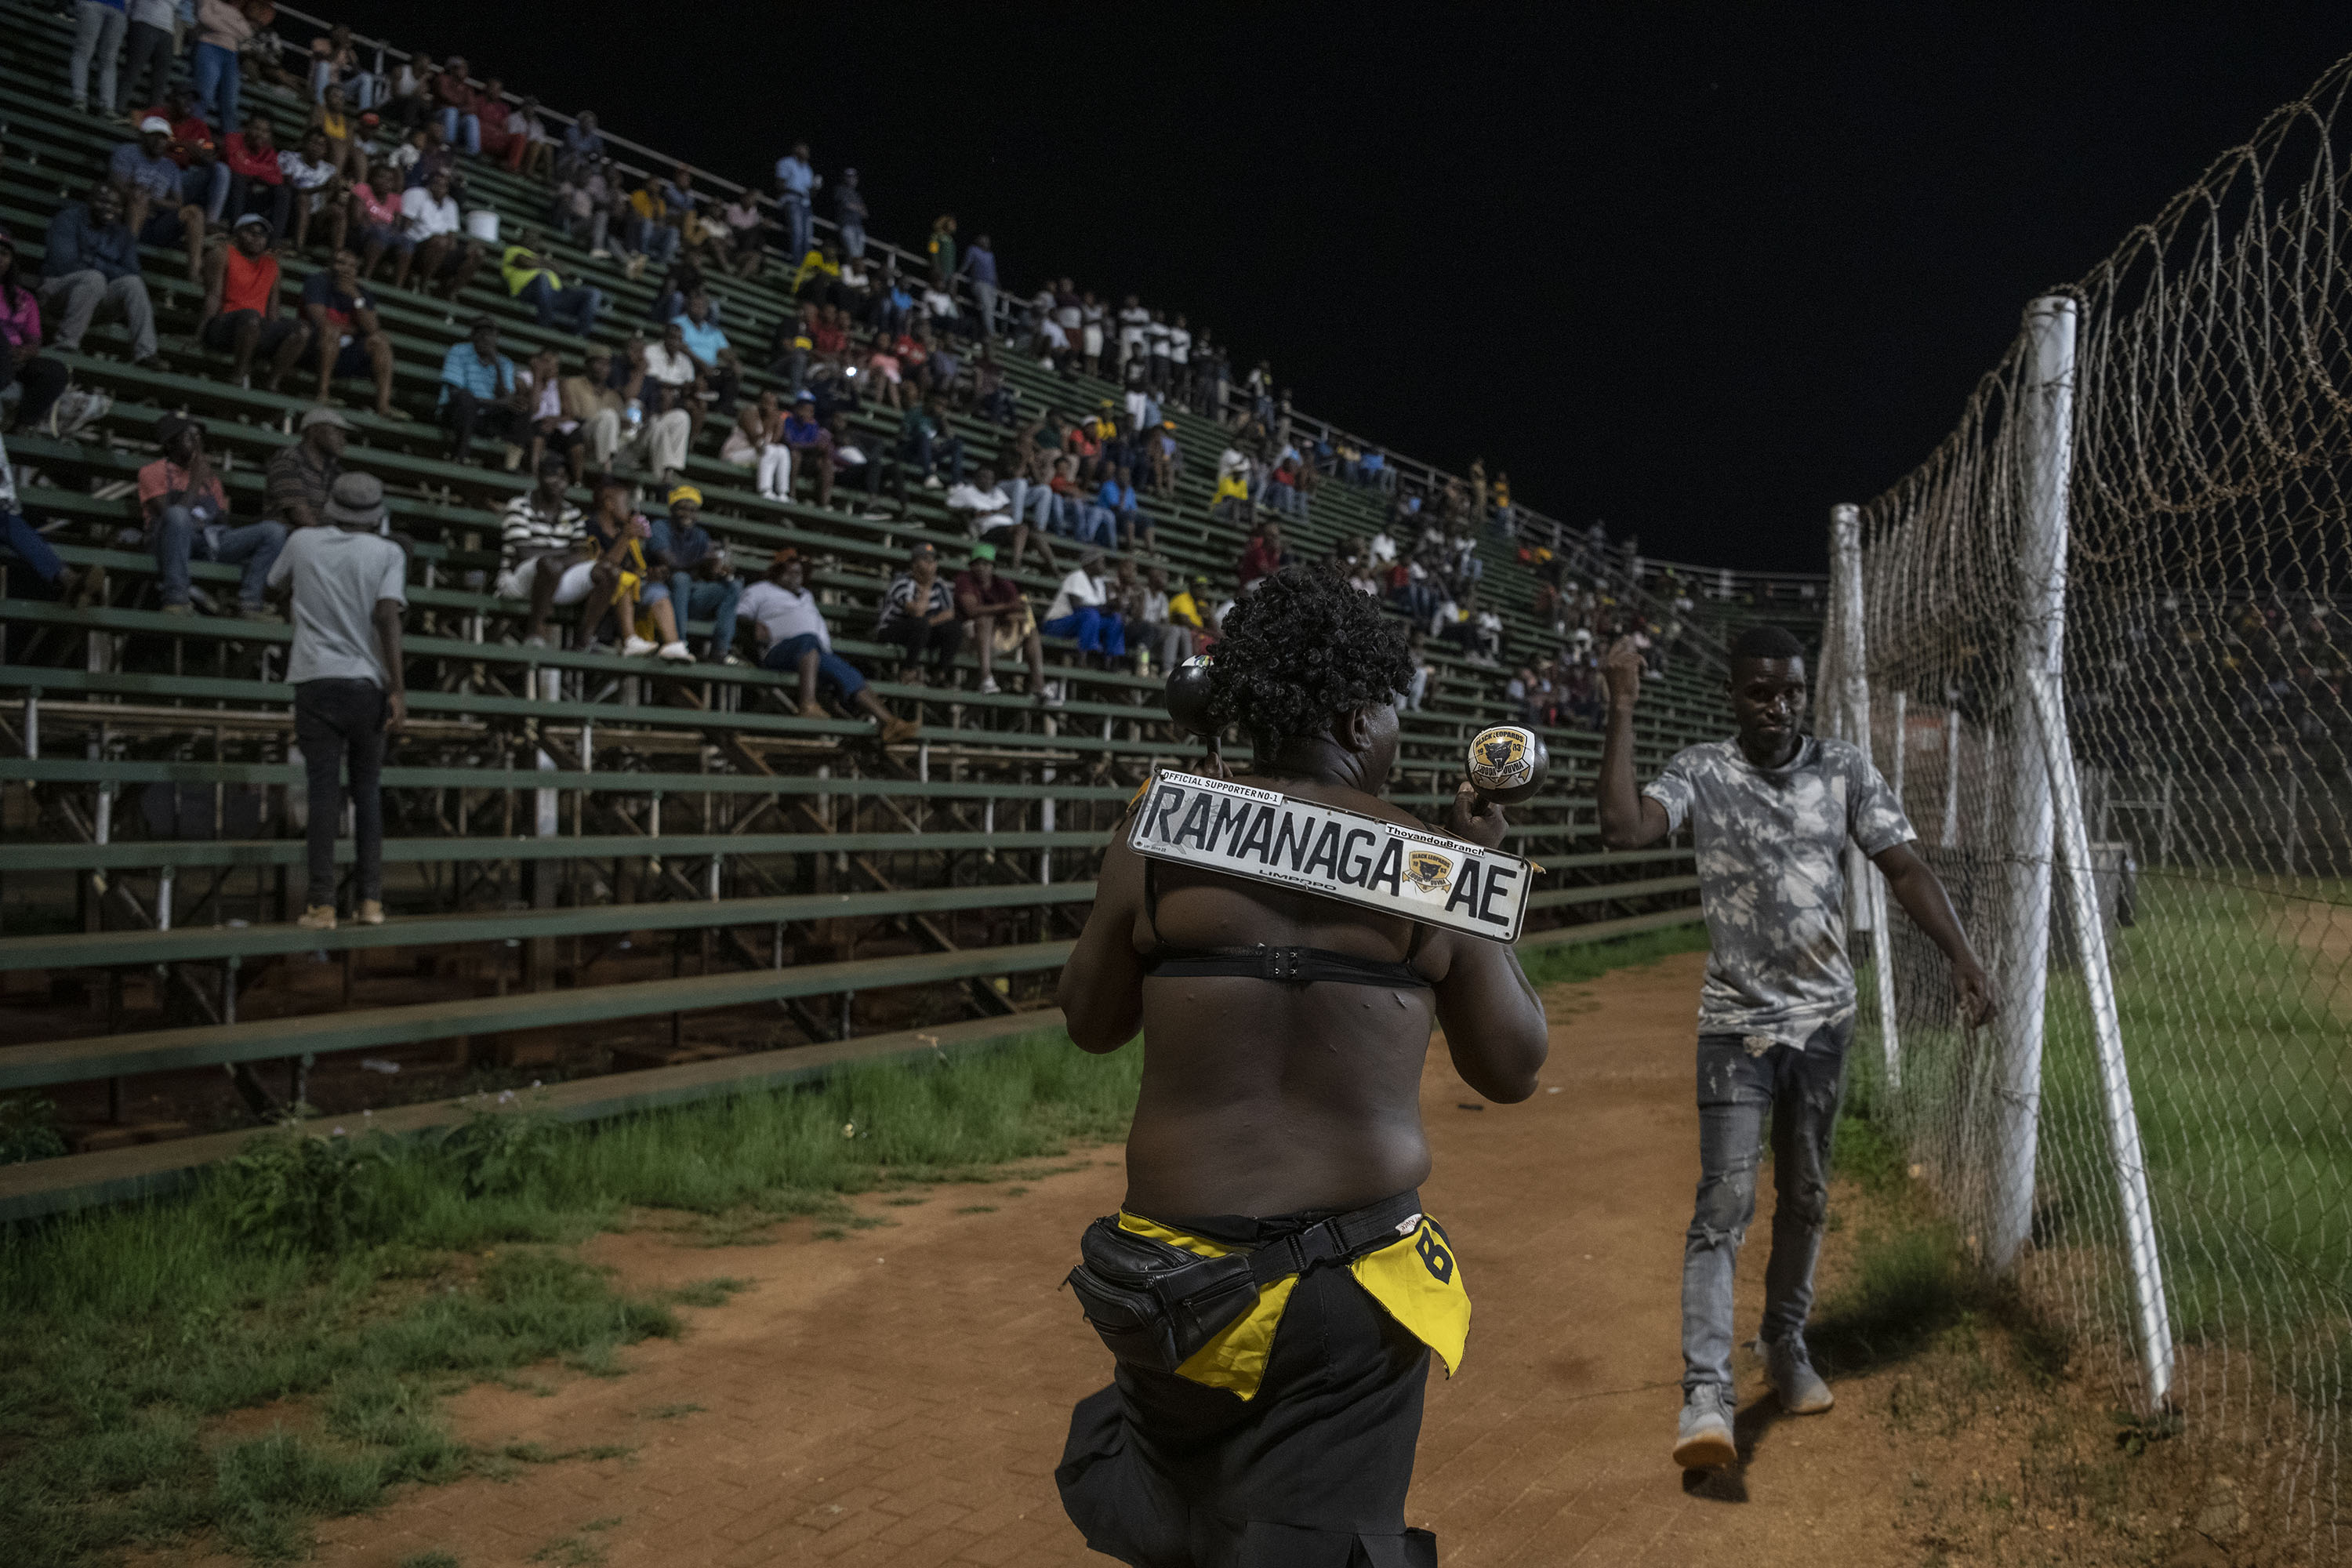 30 November 2019: A die-hard Black Leopards supporter who goes by the name of Ramananga paced up and down for the duration of the game, cajoling the players with a wood shaker.